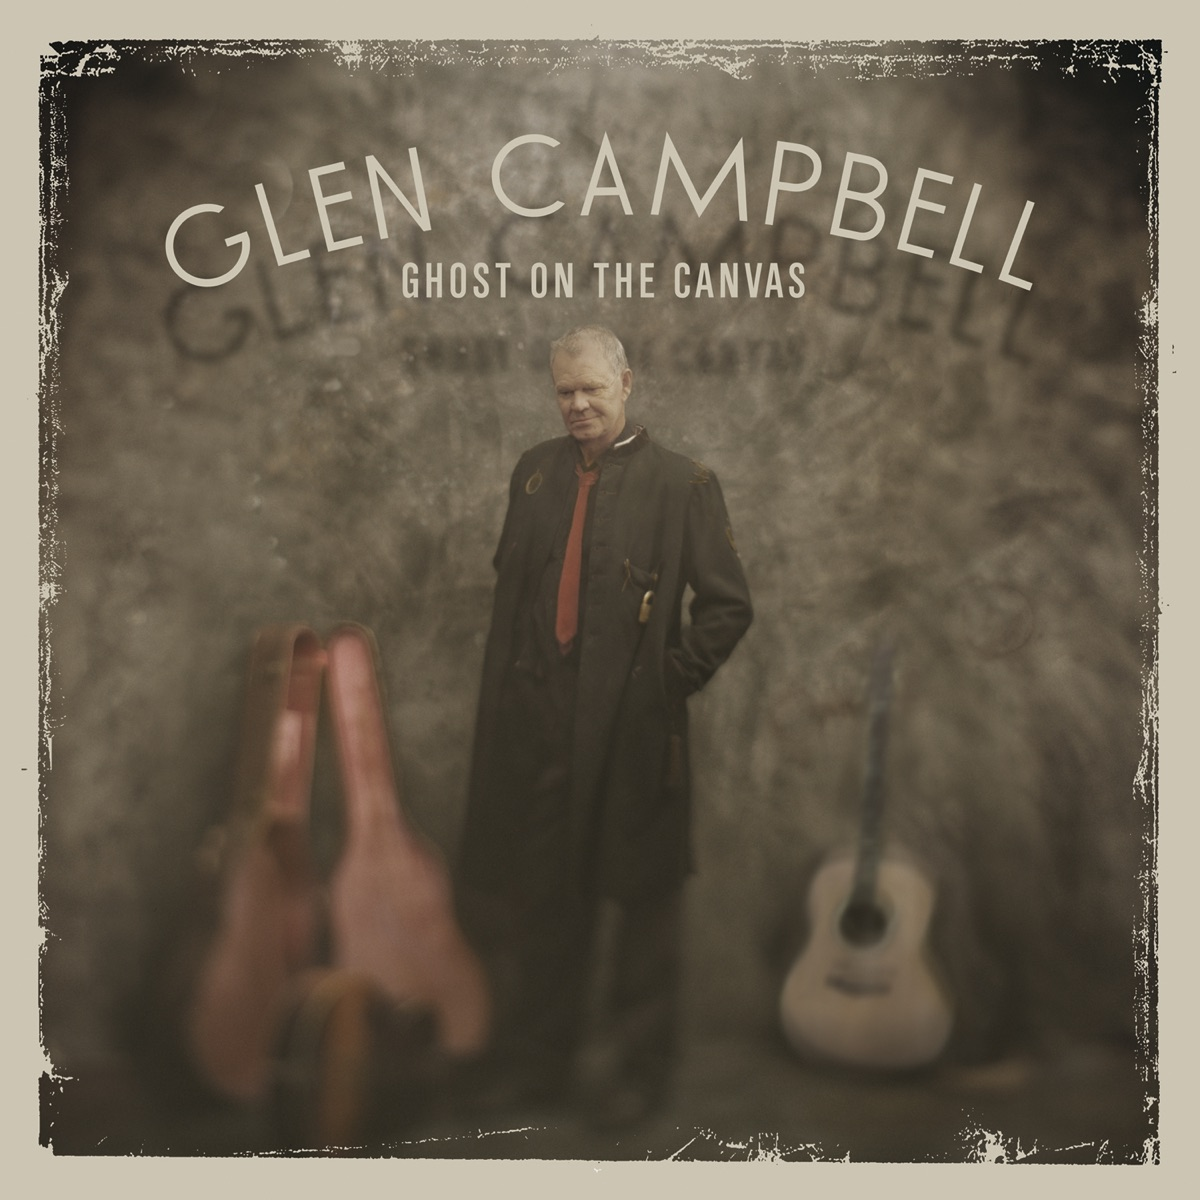 Ghost On the Canvas Glen Campbell CD cover